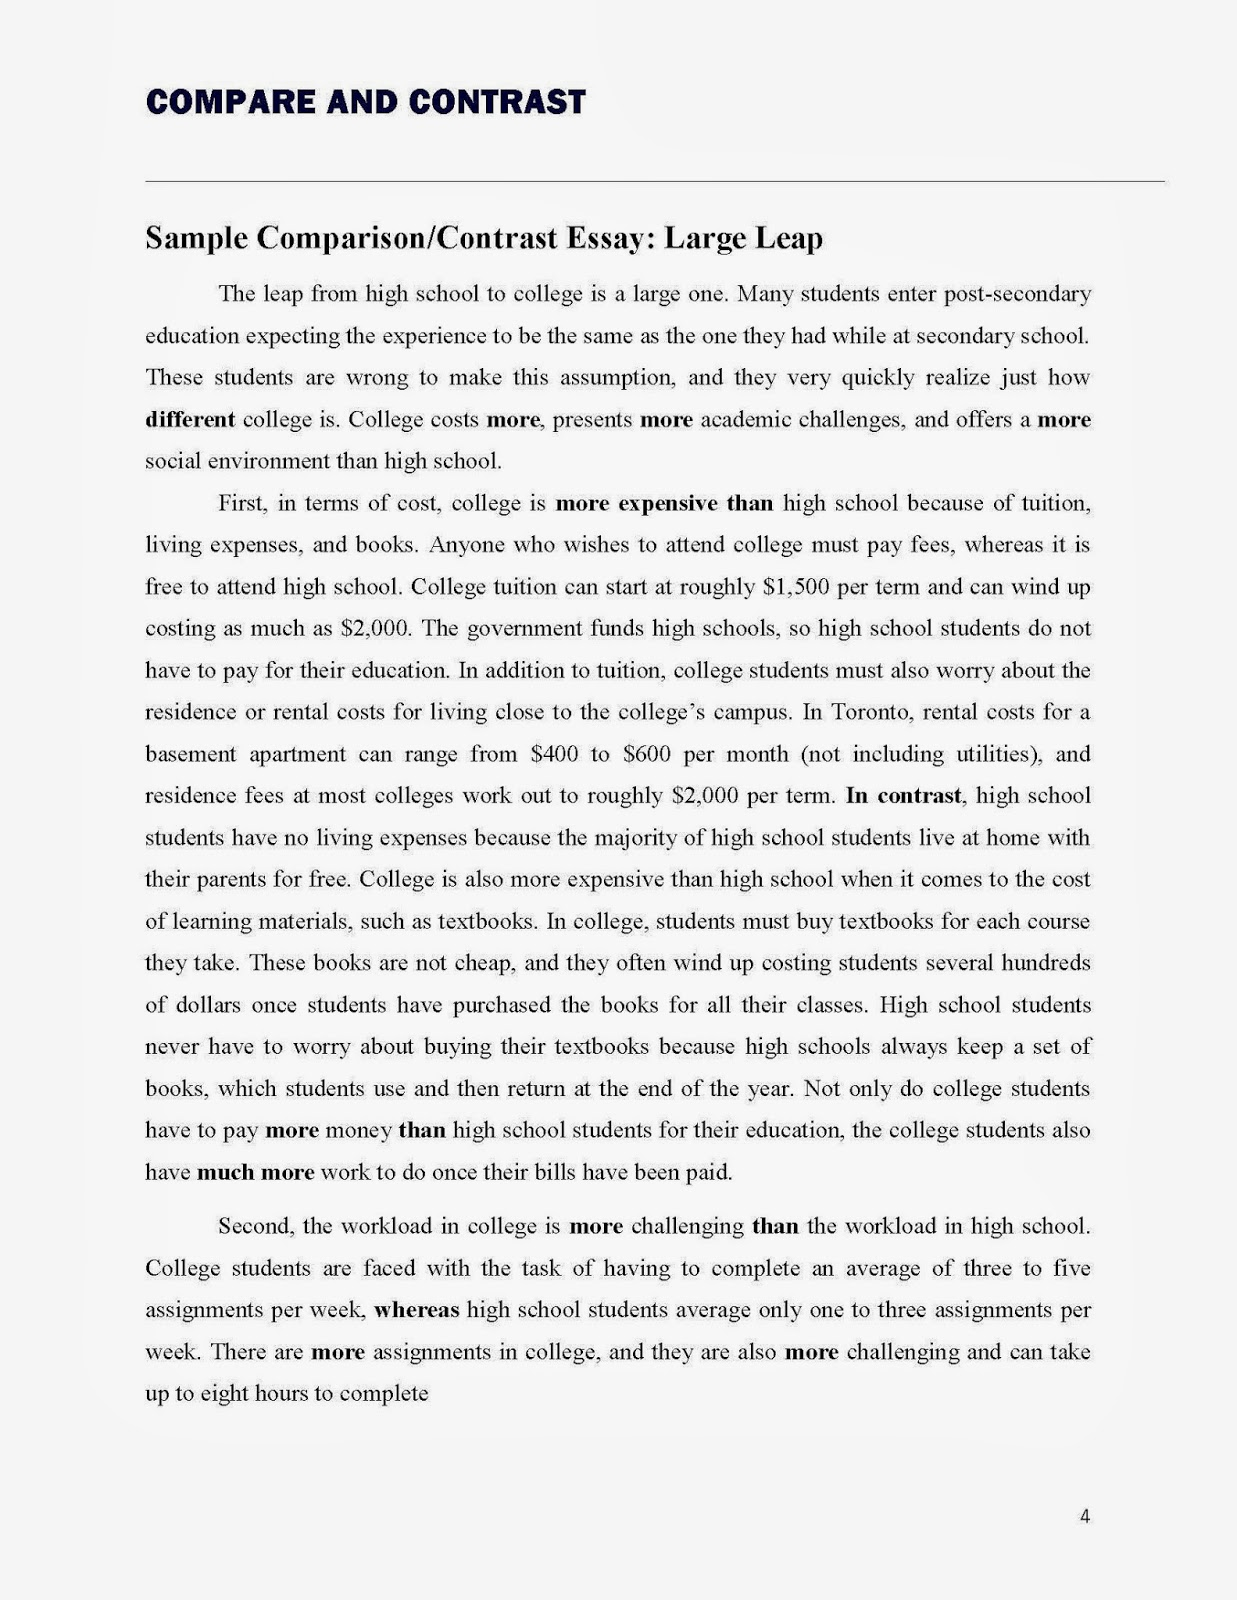 Positive Thinking Essay Writing Compare Contrast Essay Prompts Compare Contrast Essay Writing Compare And Contrast  Essay Prompt Liao Ipnodns Rucompare Natural Calamity Essay also Essay On Importance Of Religion Thesis For Compare And Contrast Essay Argument Essay Thesis  How To Write A Essay On A Book